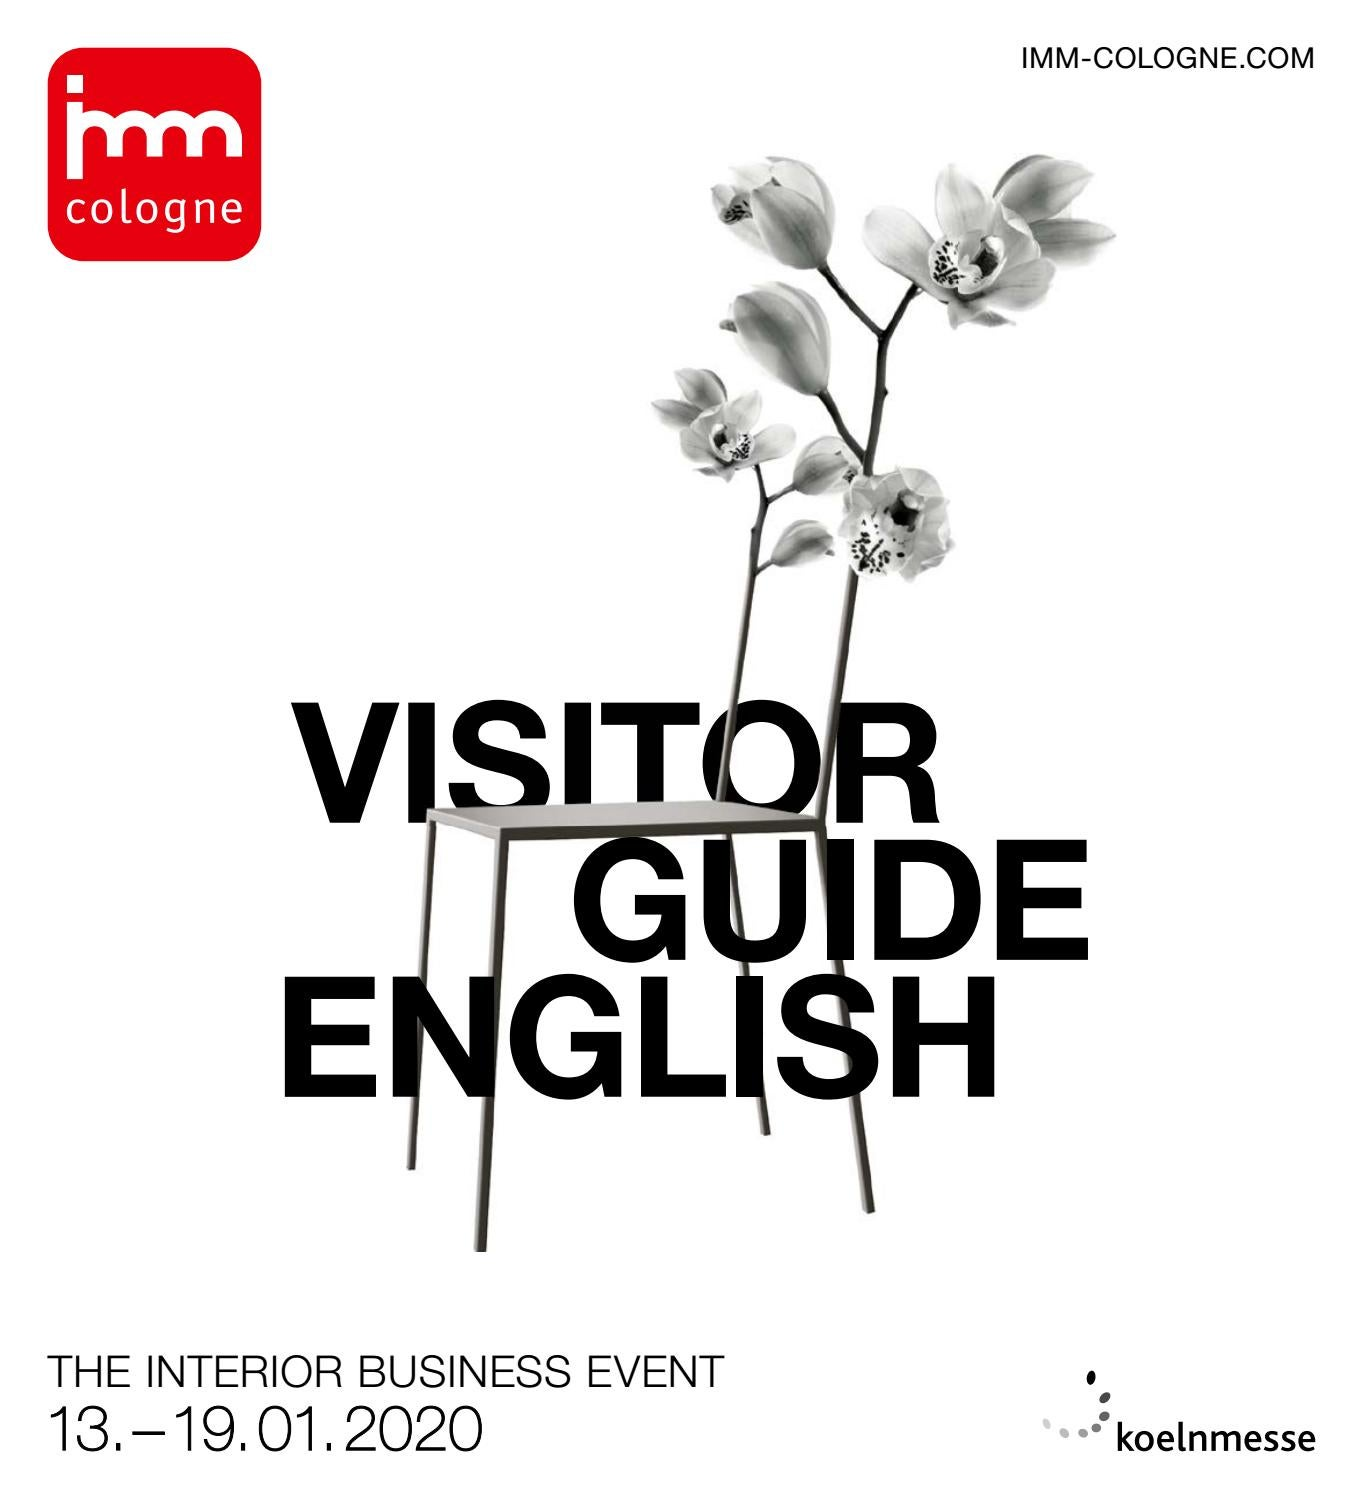 Ikea Tobo Tv Meubel.Imm Cologne Visitor Guide 2020 By Koelnmesse Gmbh Issuu